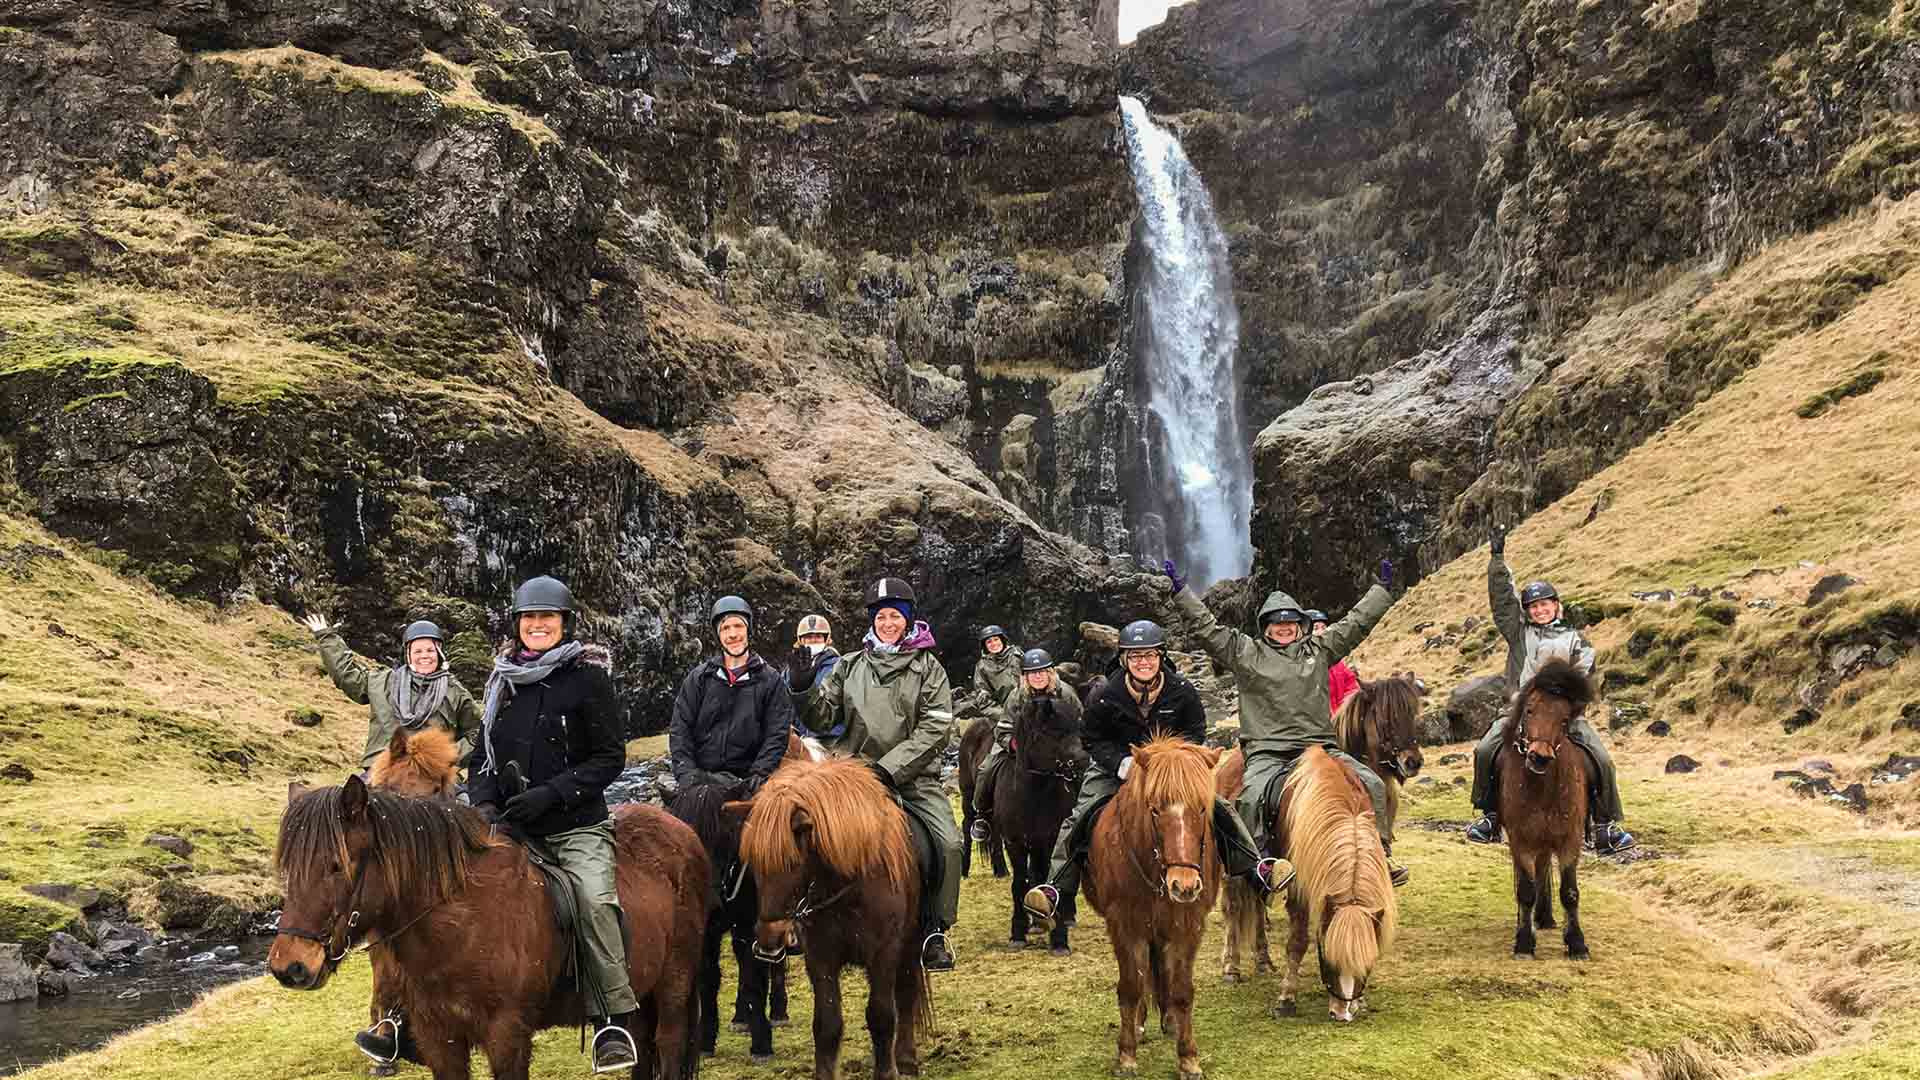 Horseback riding at Irarfoss, Iceland